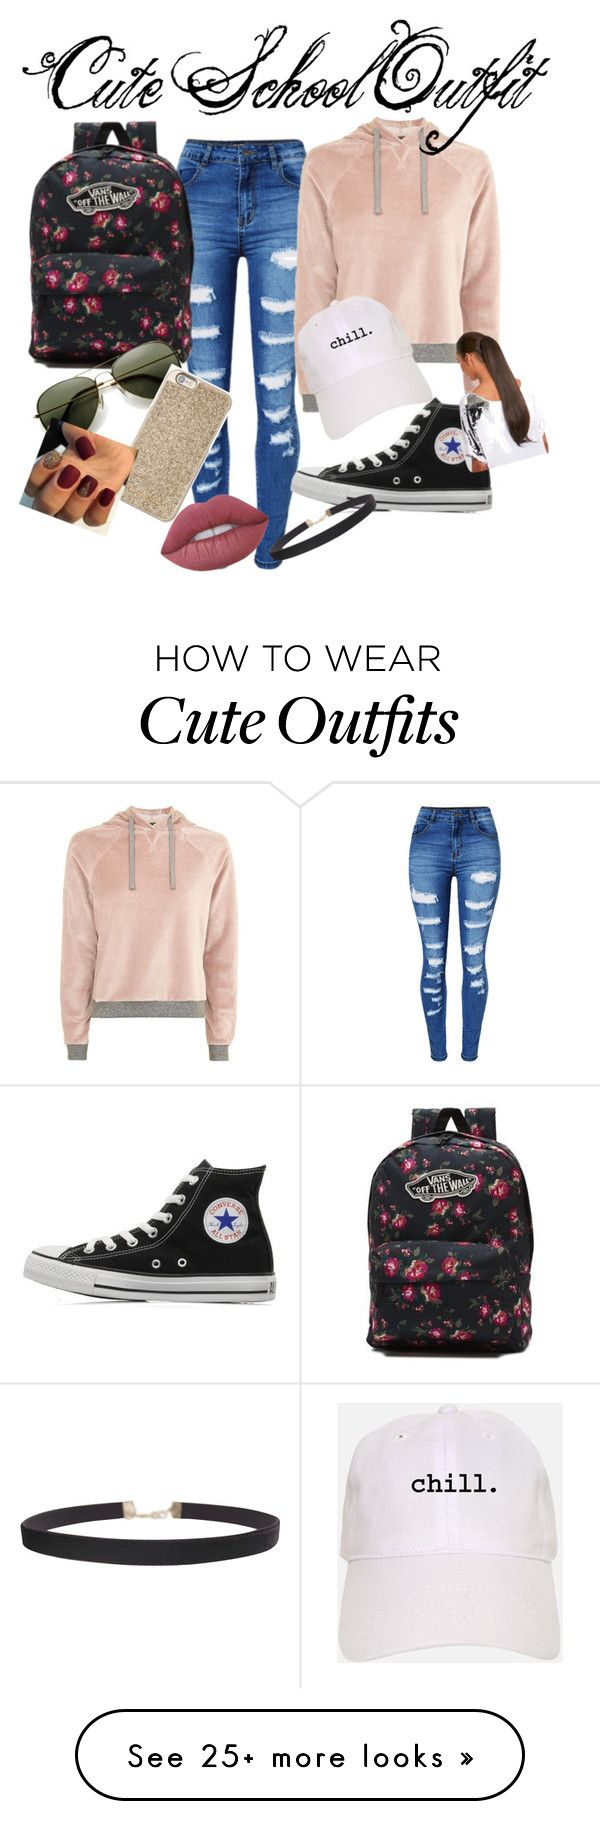 """Cute School Outfit"" by riley-28 on Polyvore featuring WithChic, Topshop, Converse, Vans, Michael Kors, Humble Chic and Lime Crime"